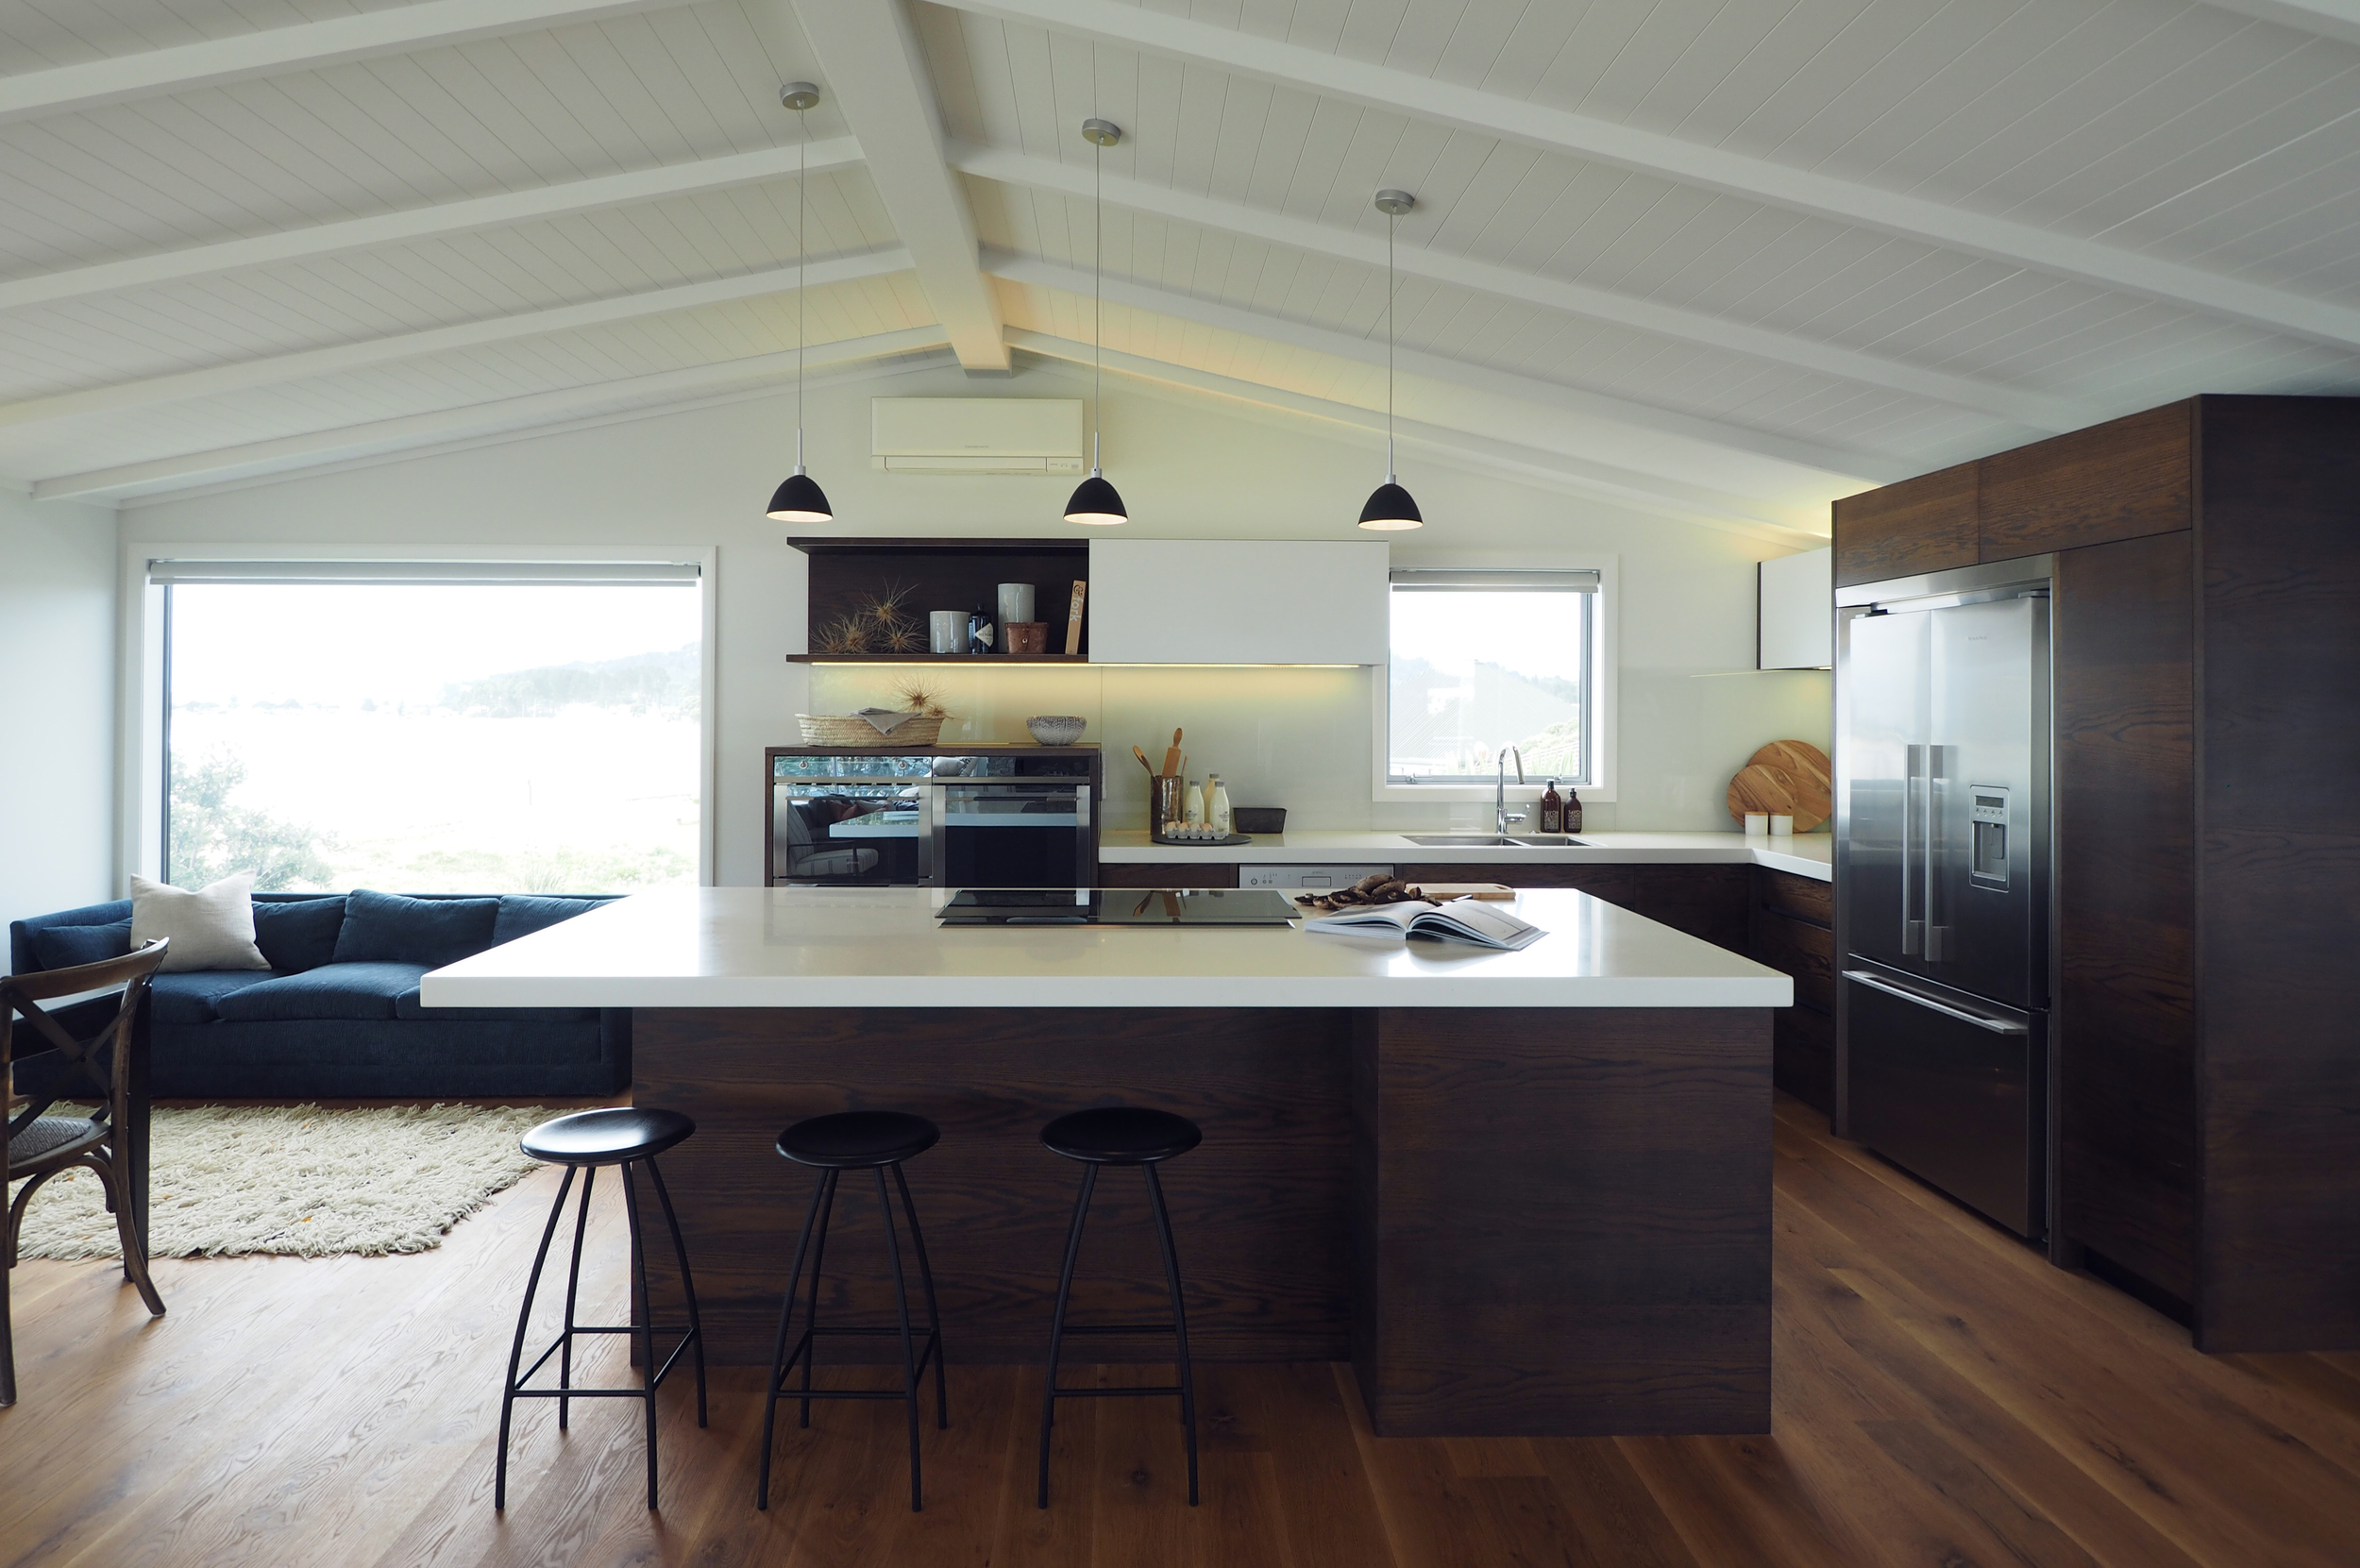 Sonya Cotter Interior Design - Beach Kitchen House Design